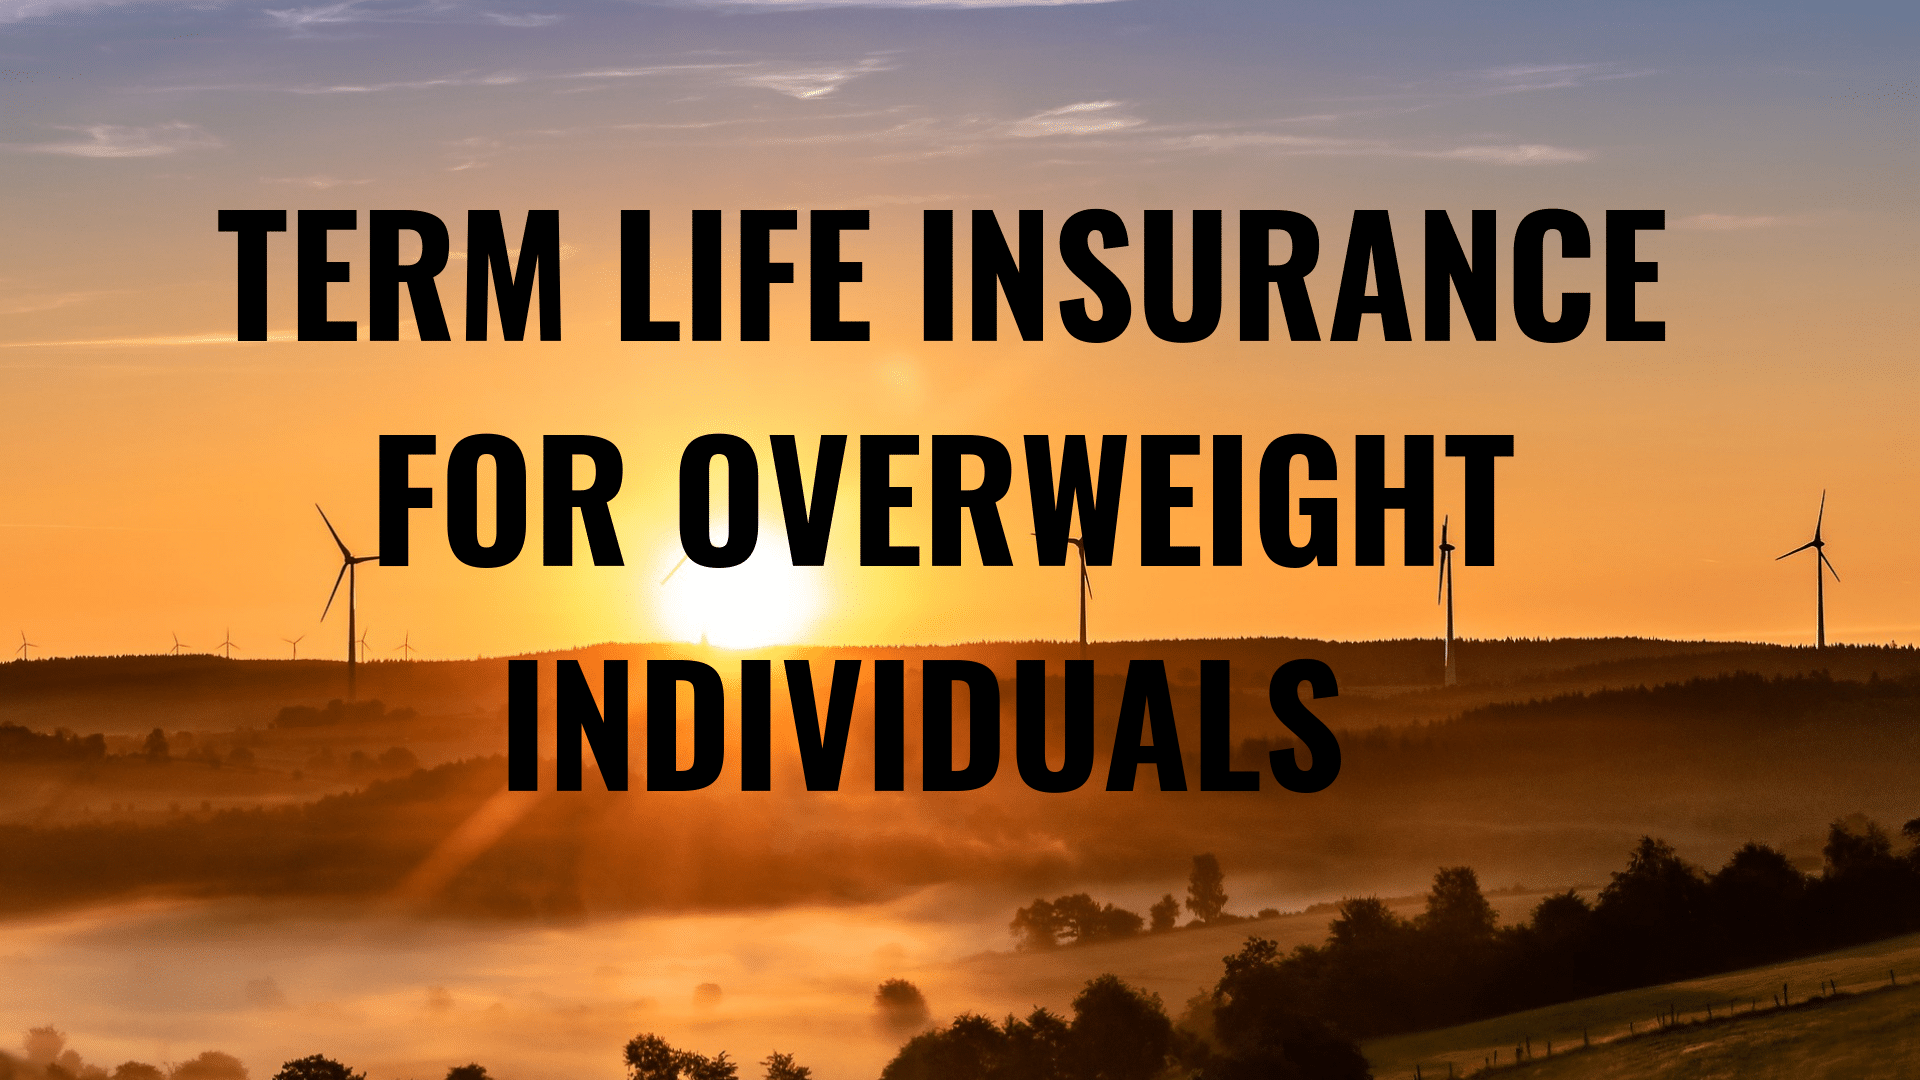 term life insurance for overweight, term life insurance for obese, term life insurance, level term life insurance